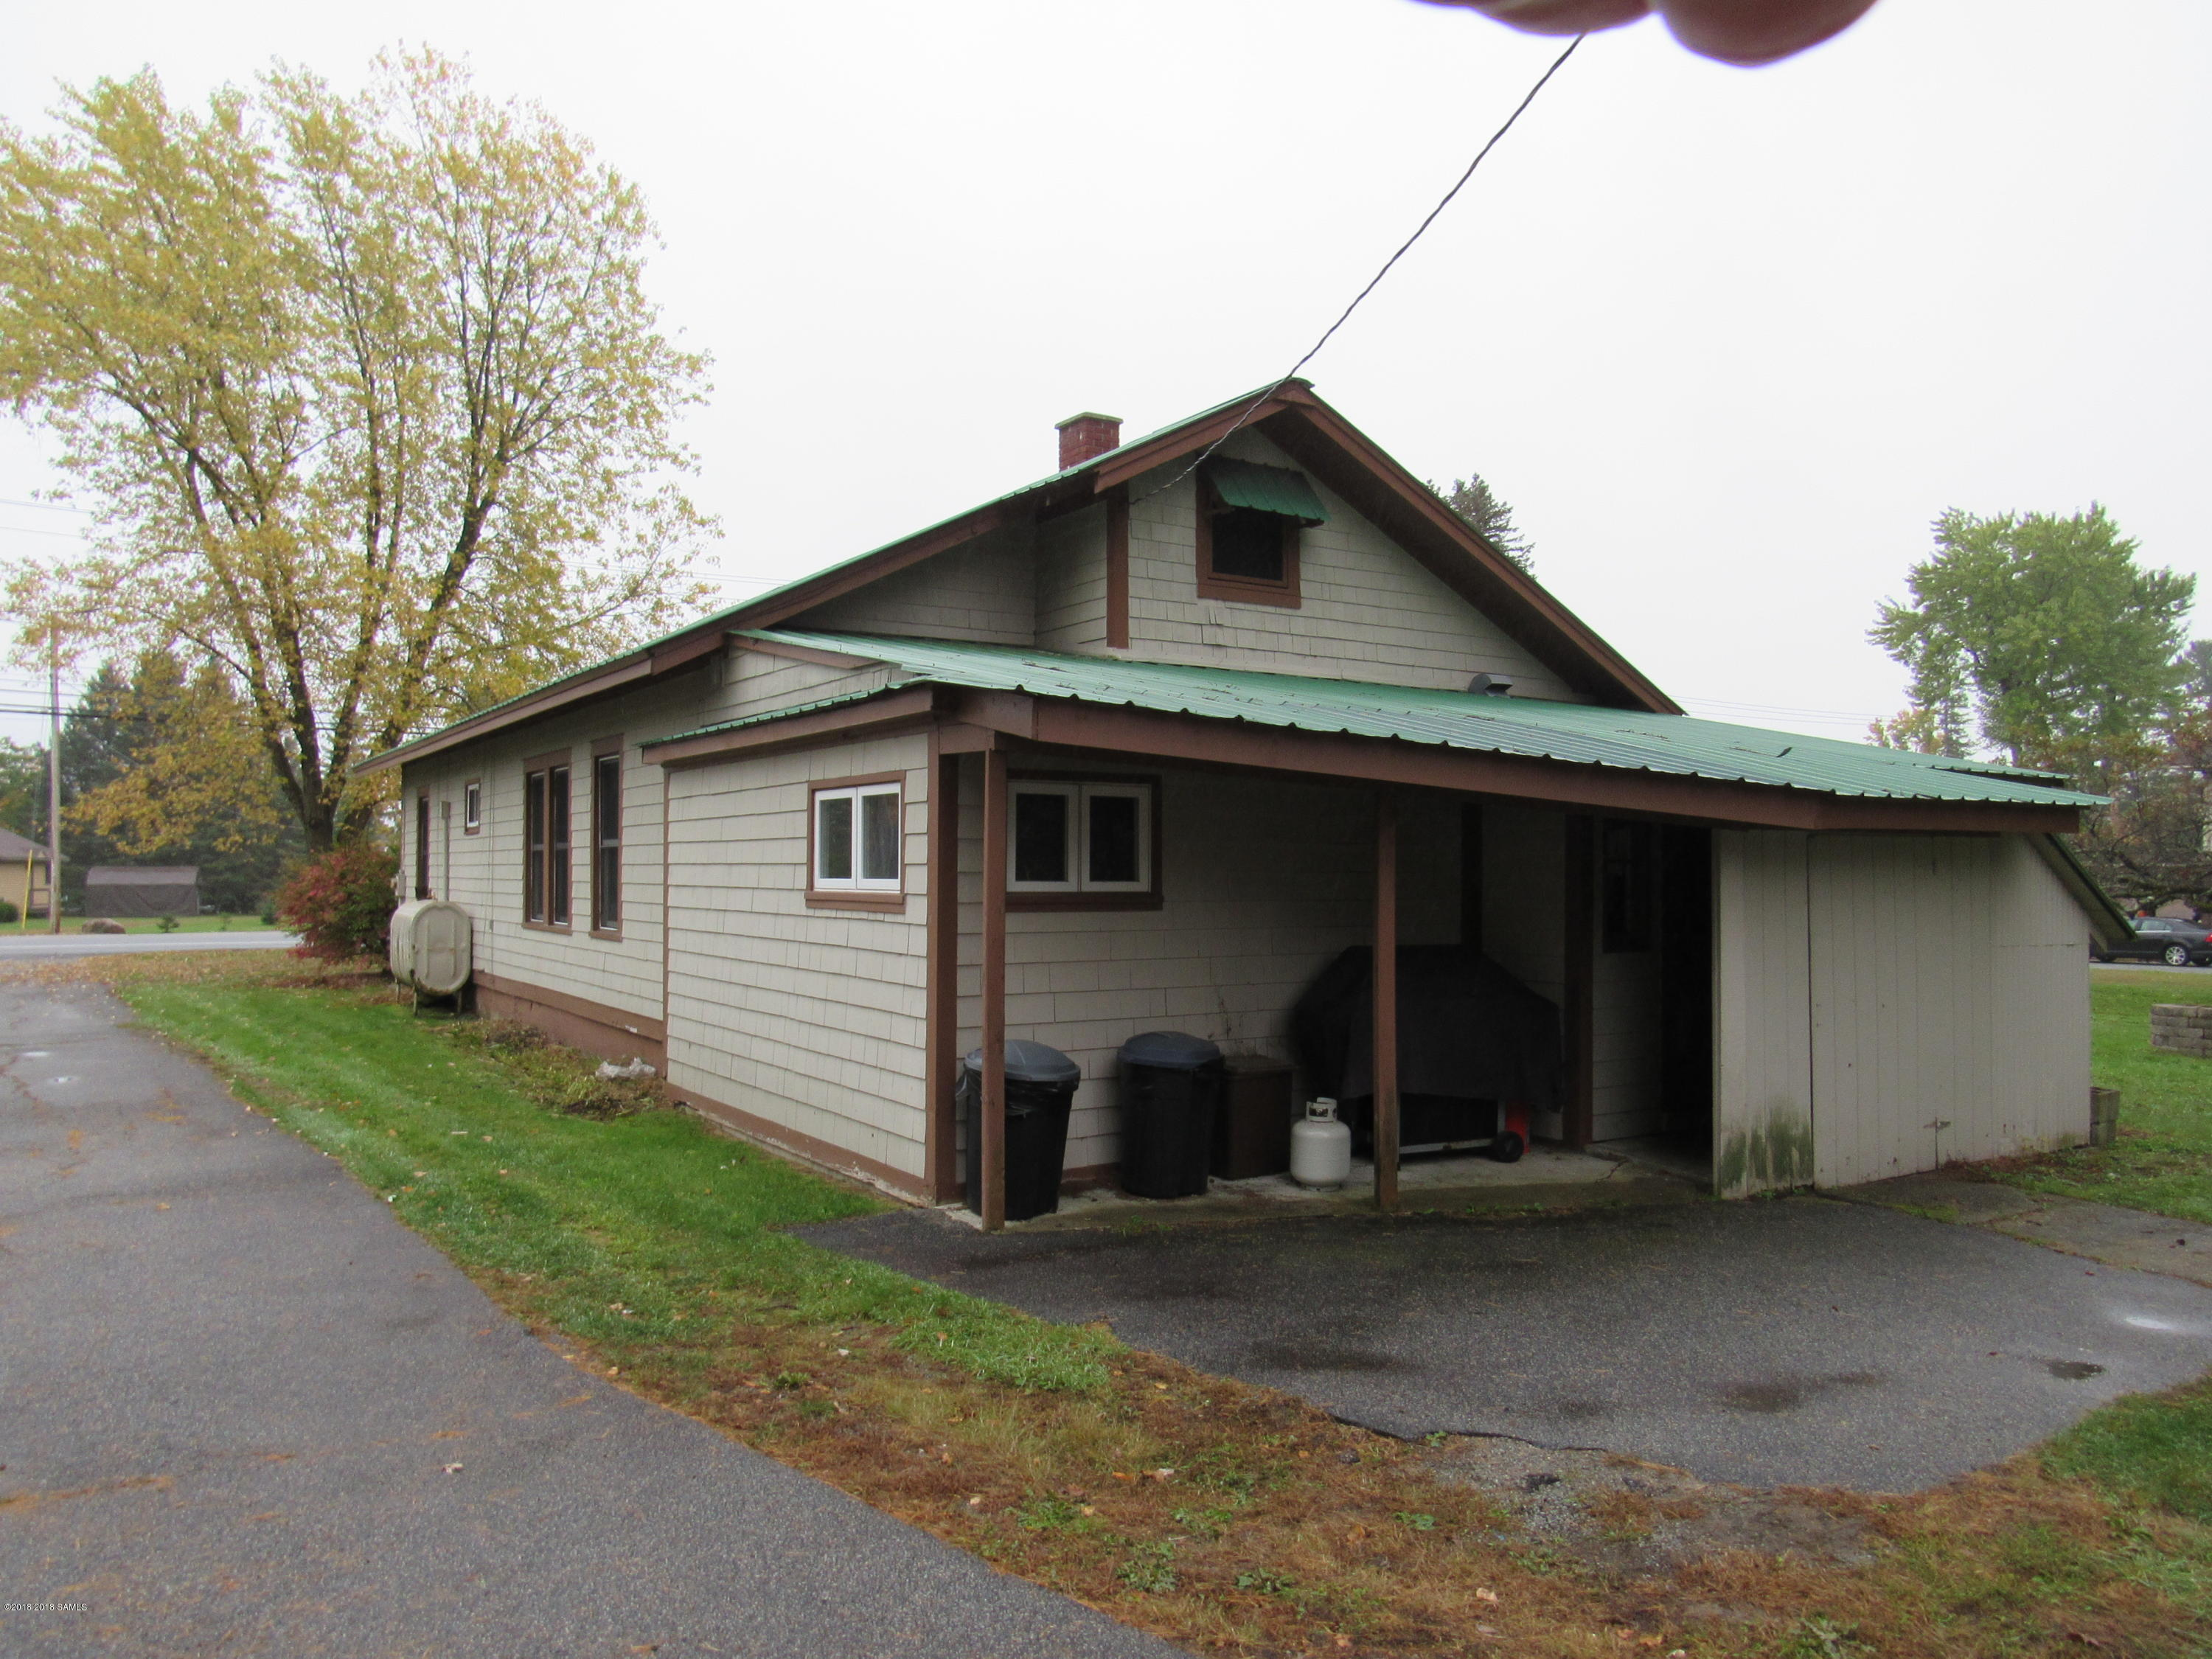 967 State Route 9, Schroon NY 12870 photo 13